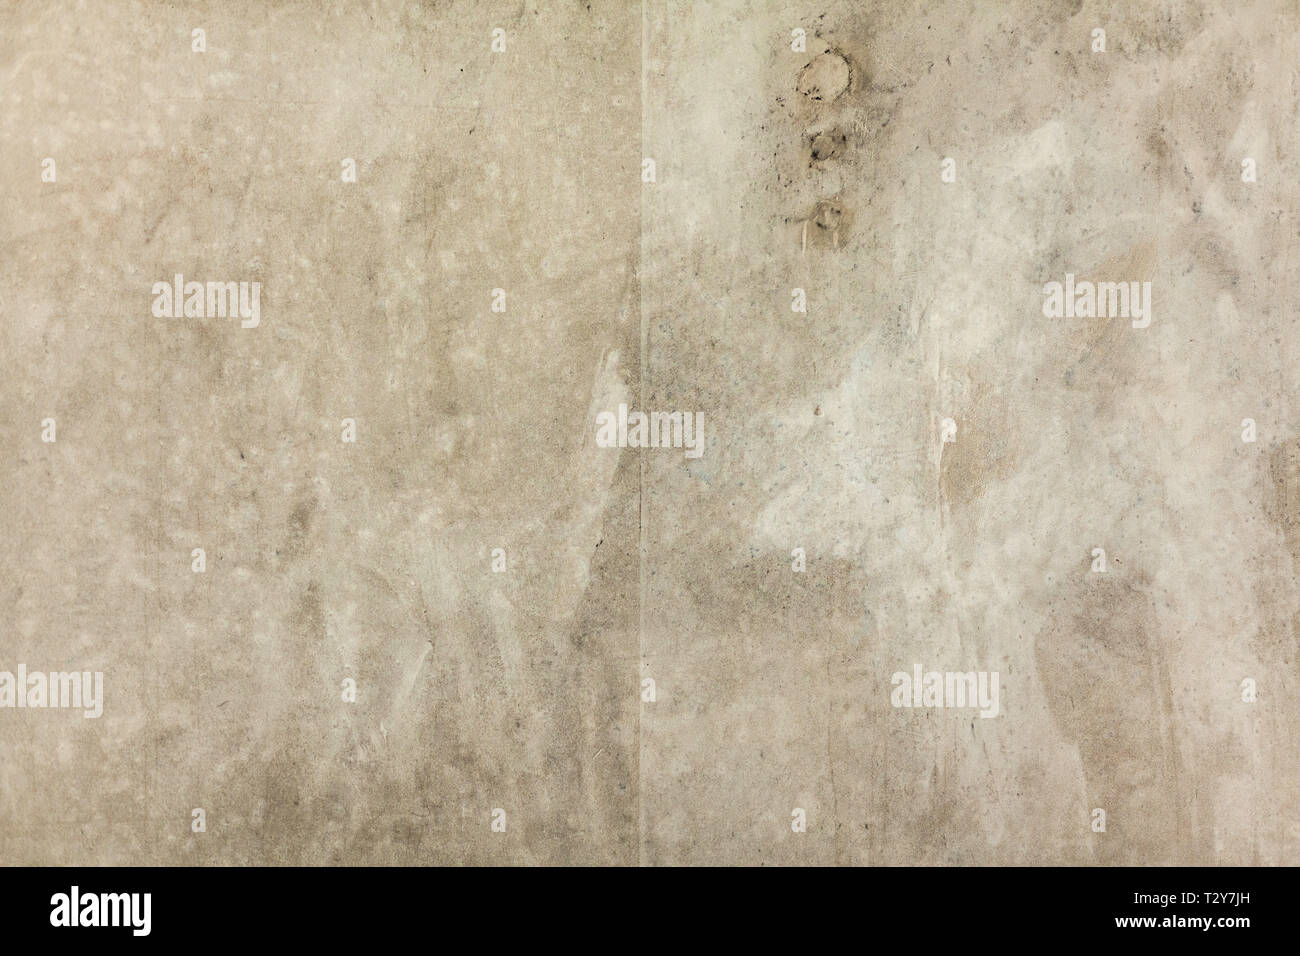 Polished concrete background overlay texture - Stock Image